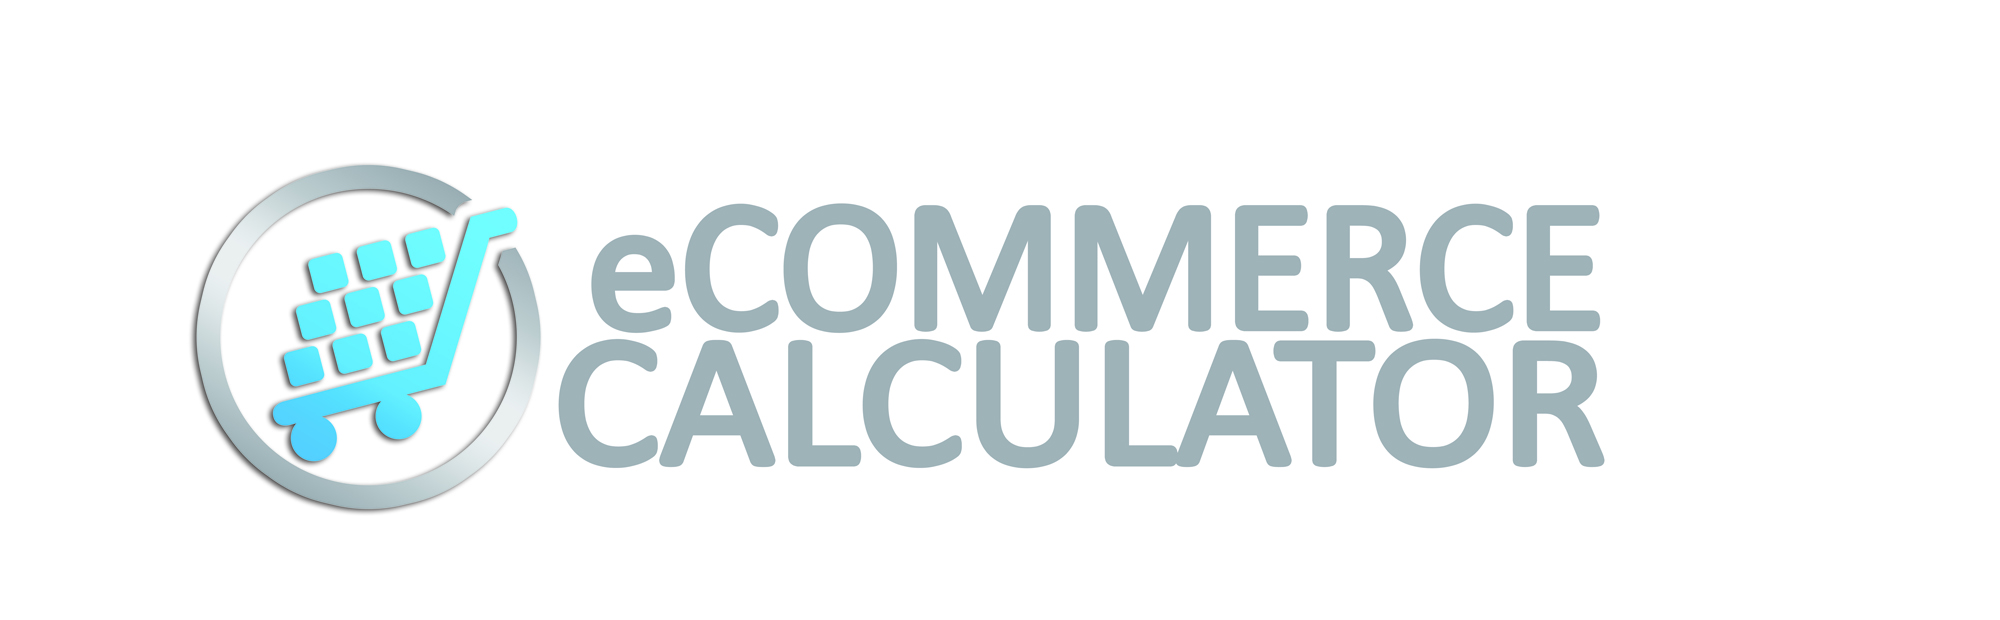 ecommerce-calculator.com